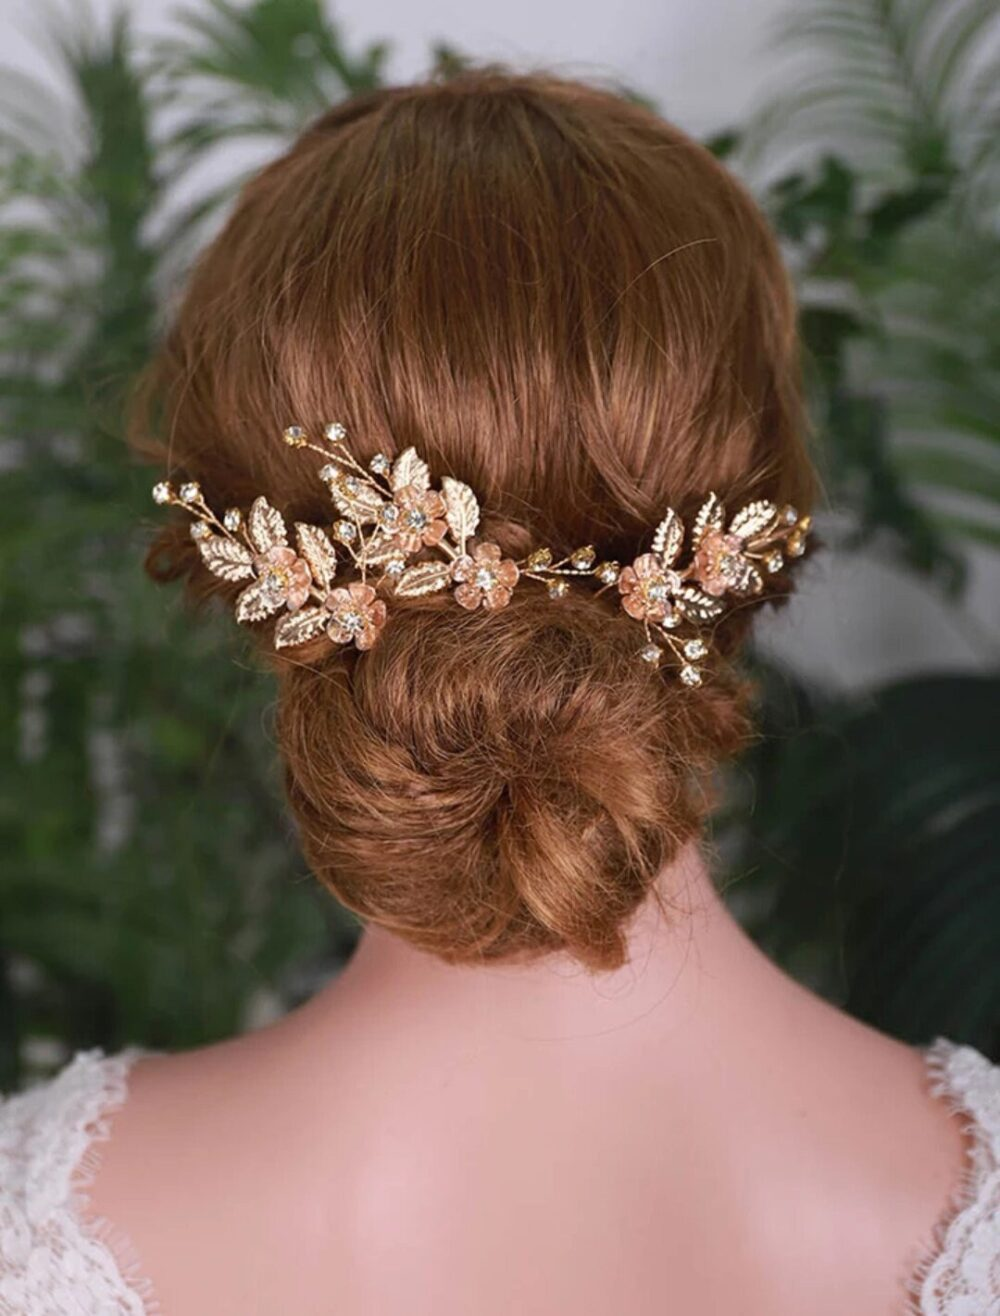 Gold Hair Pins Set Of 3 , Wedding Comb Clips For Bride Tiara Crown Boho Accessories Floral Leaf Hairpiece